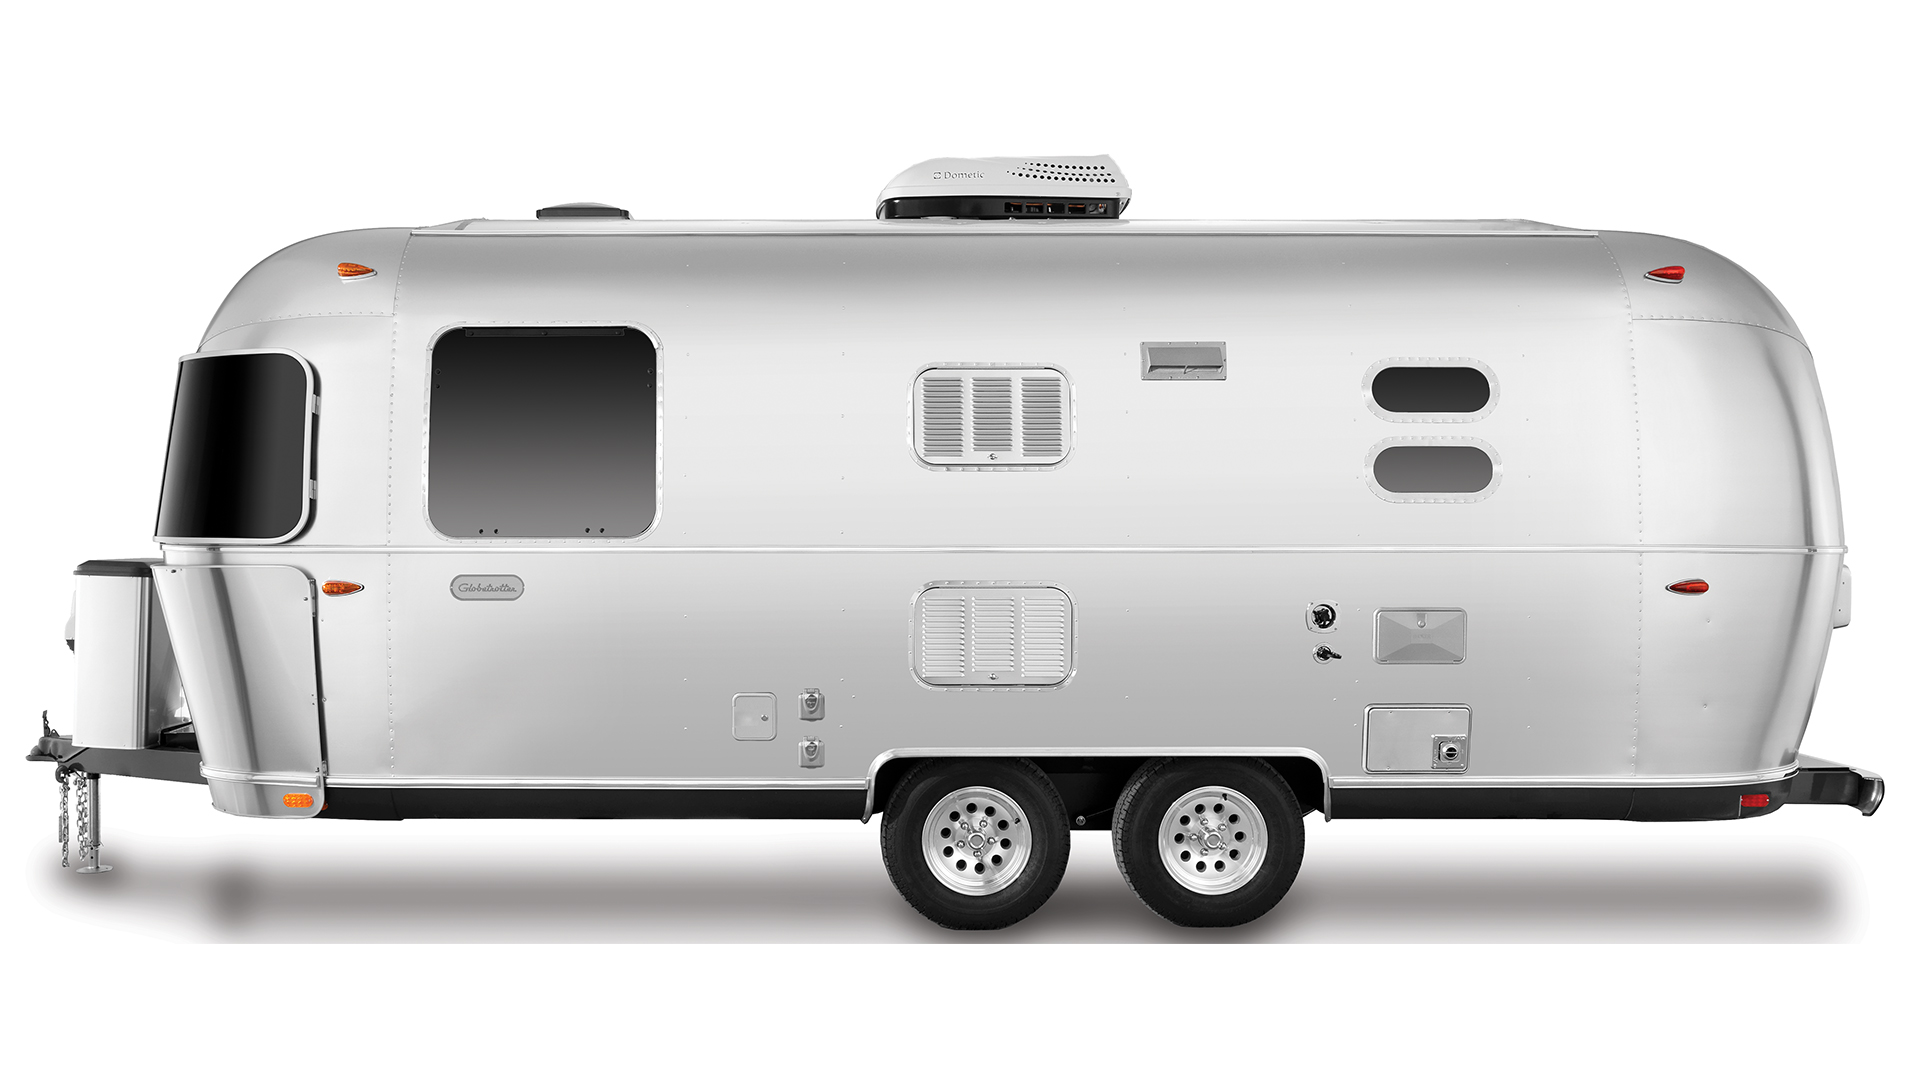 Airstream Globetrotter 23 Front Bed Queen Trailer